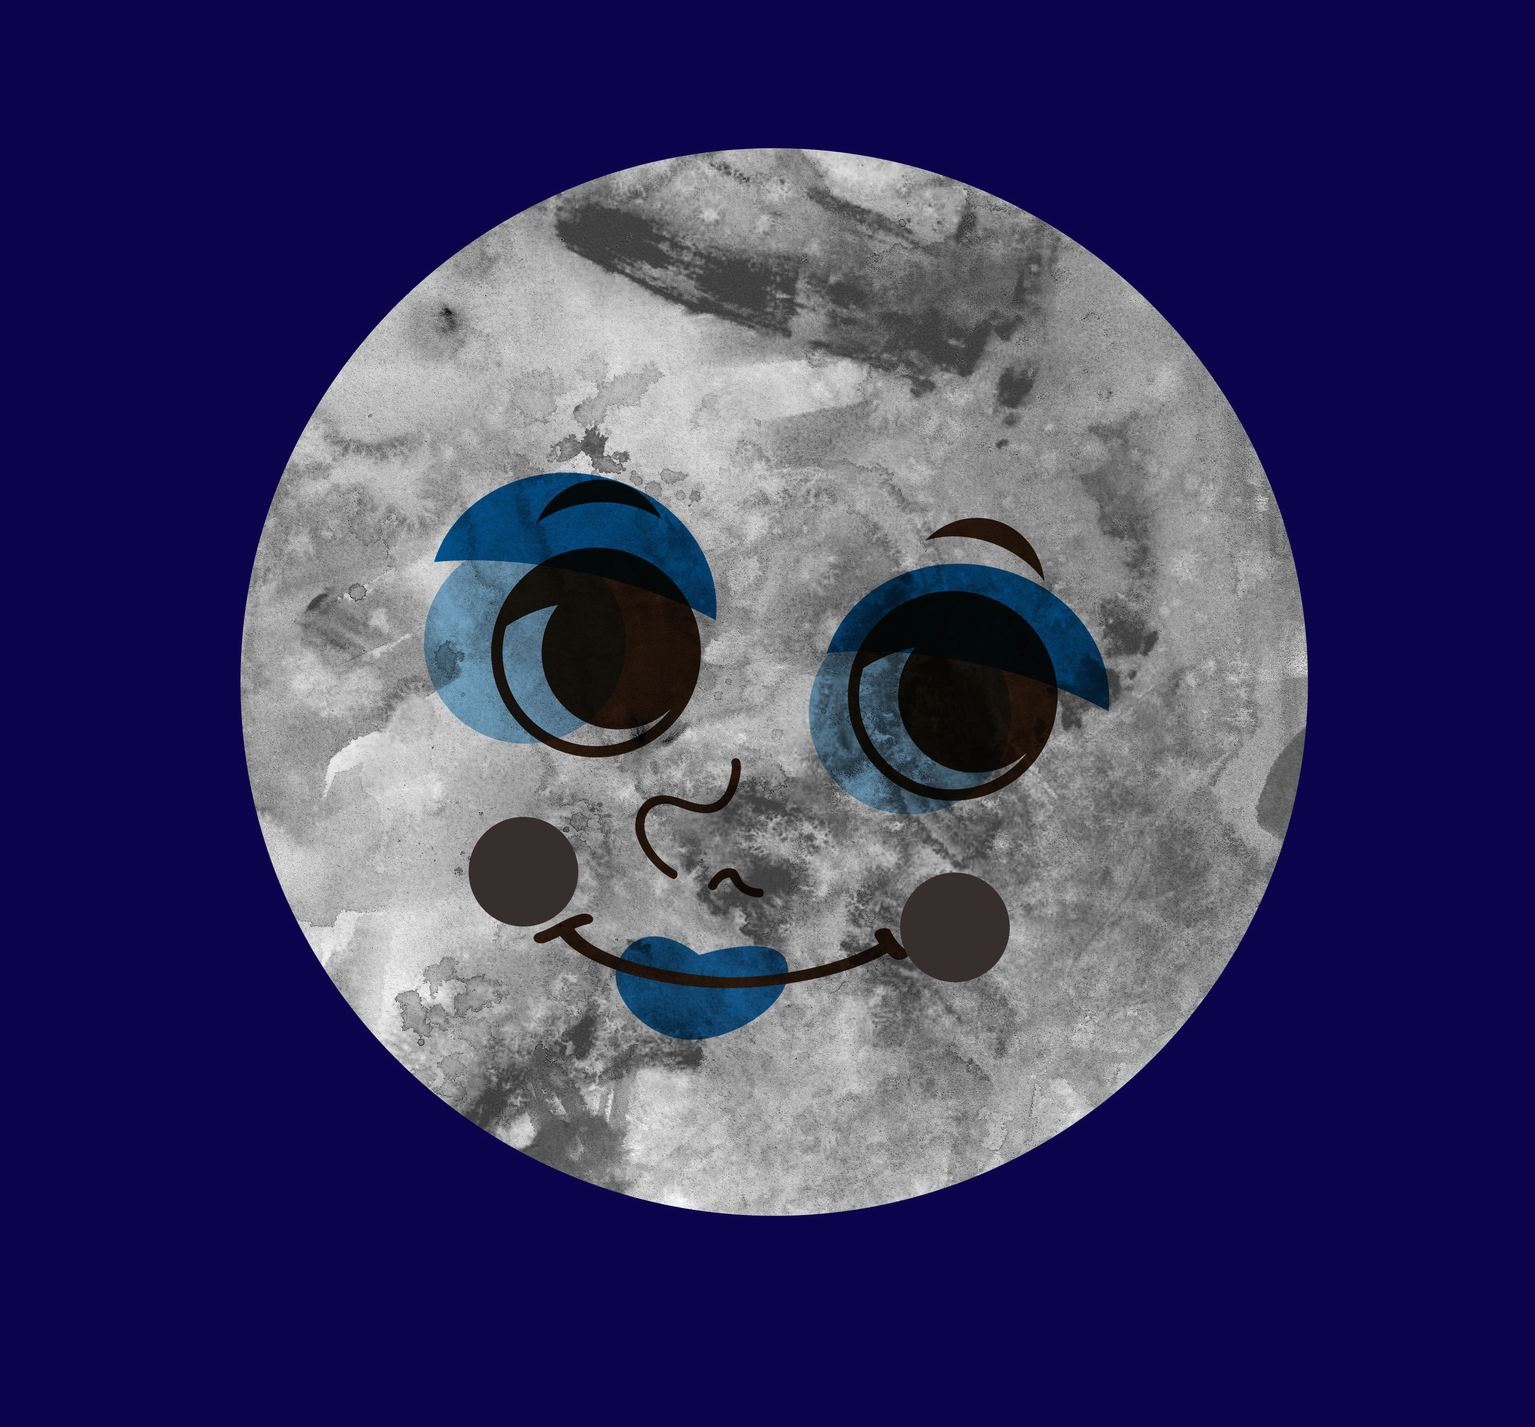 Drawing of moon with face